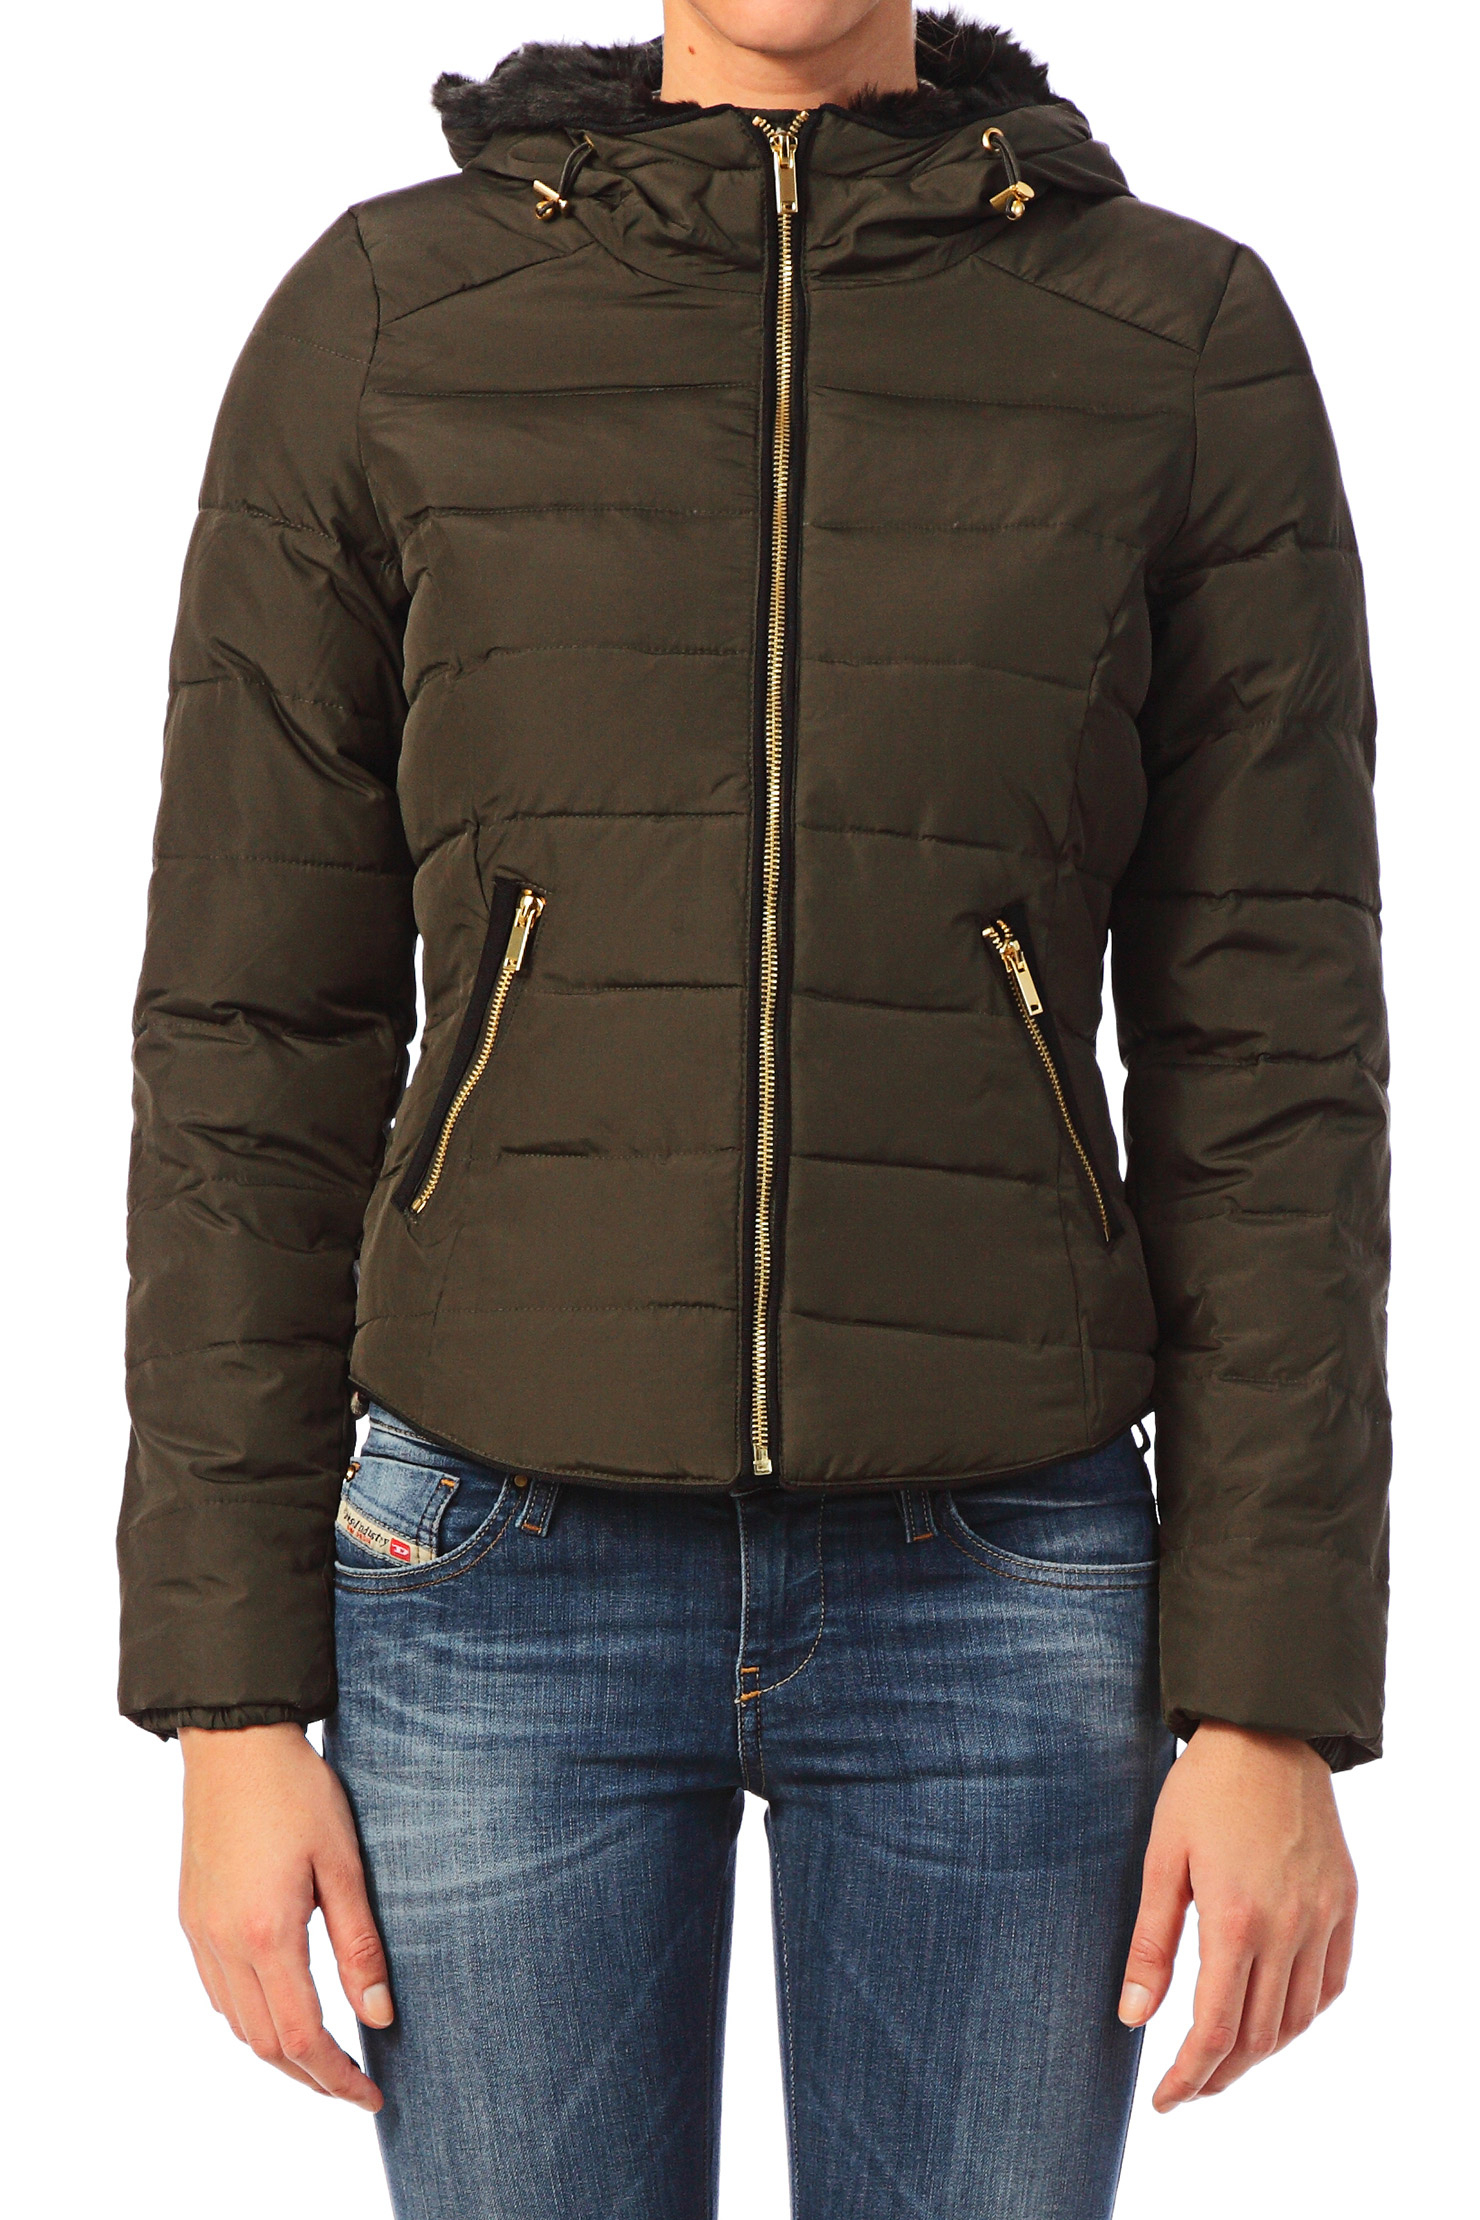 Vero moda Quilted Jacket in Green | Lyst